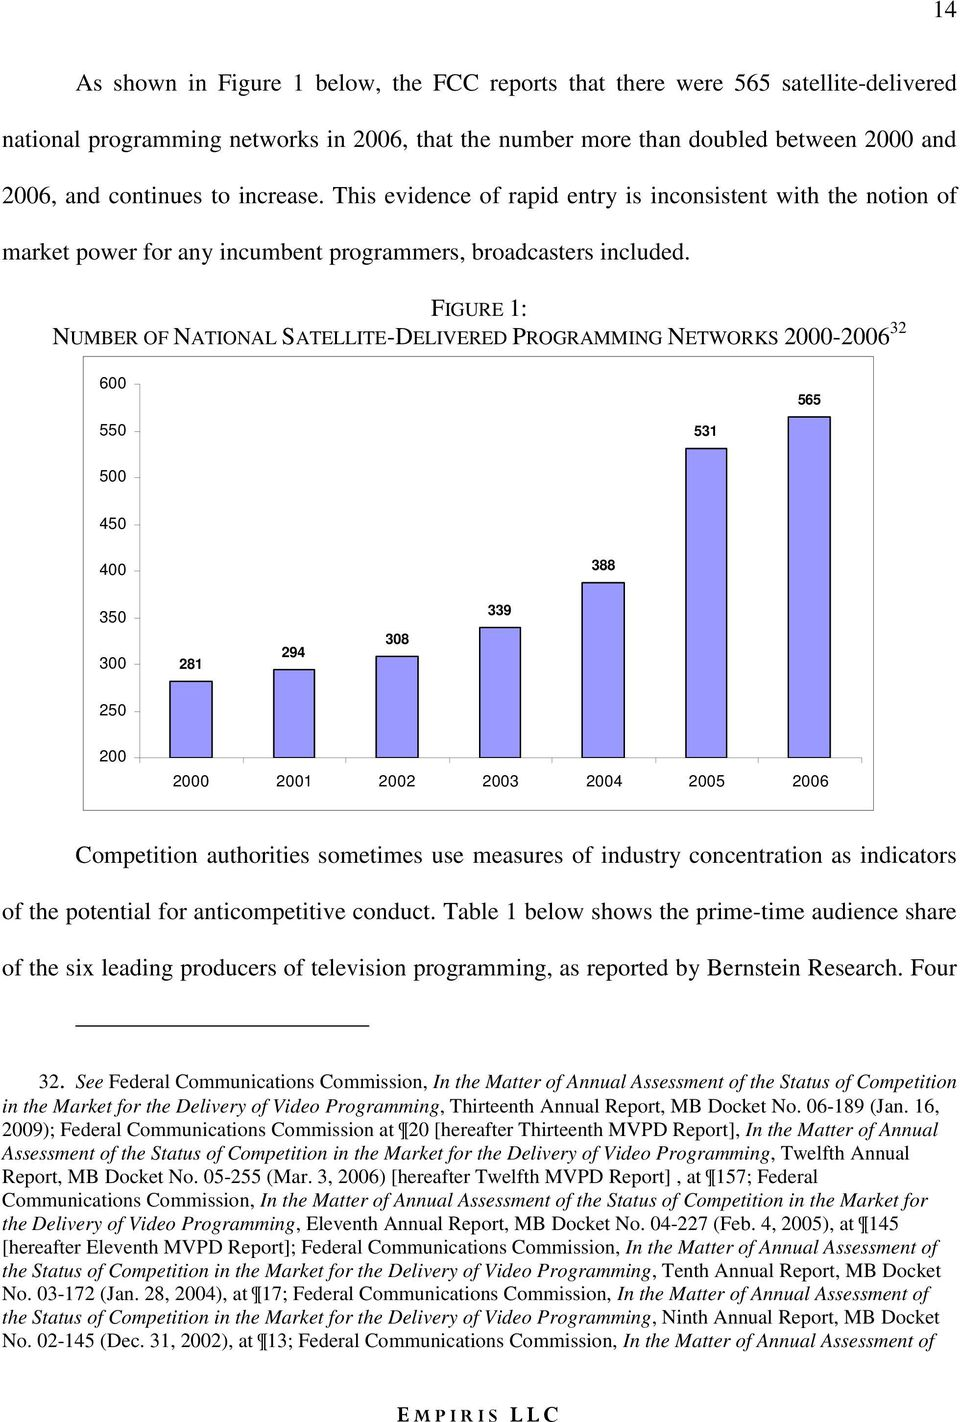 FIGURE 1: NUMBER OF NATIONAL SATELLITE-DELIVERED PROGRAMMING NETWORKS 2000-2006 32 600 550 531 565 500 450 400 388 350 300 281 294 308 339 250 200 2000 2001 2002 2003 2004 2005 2006 Competition